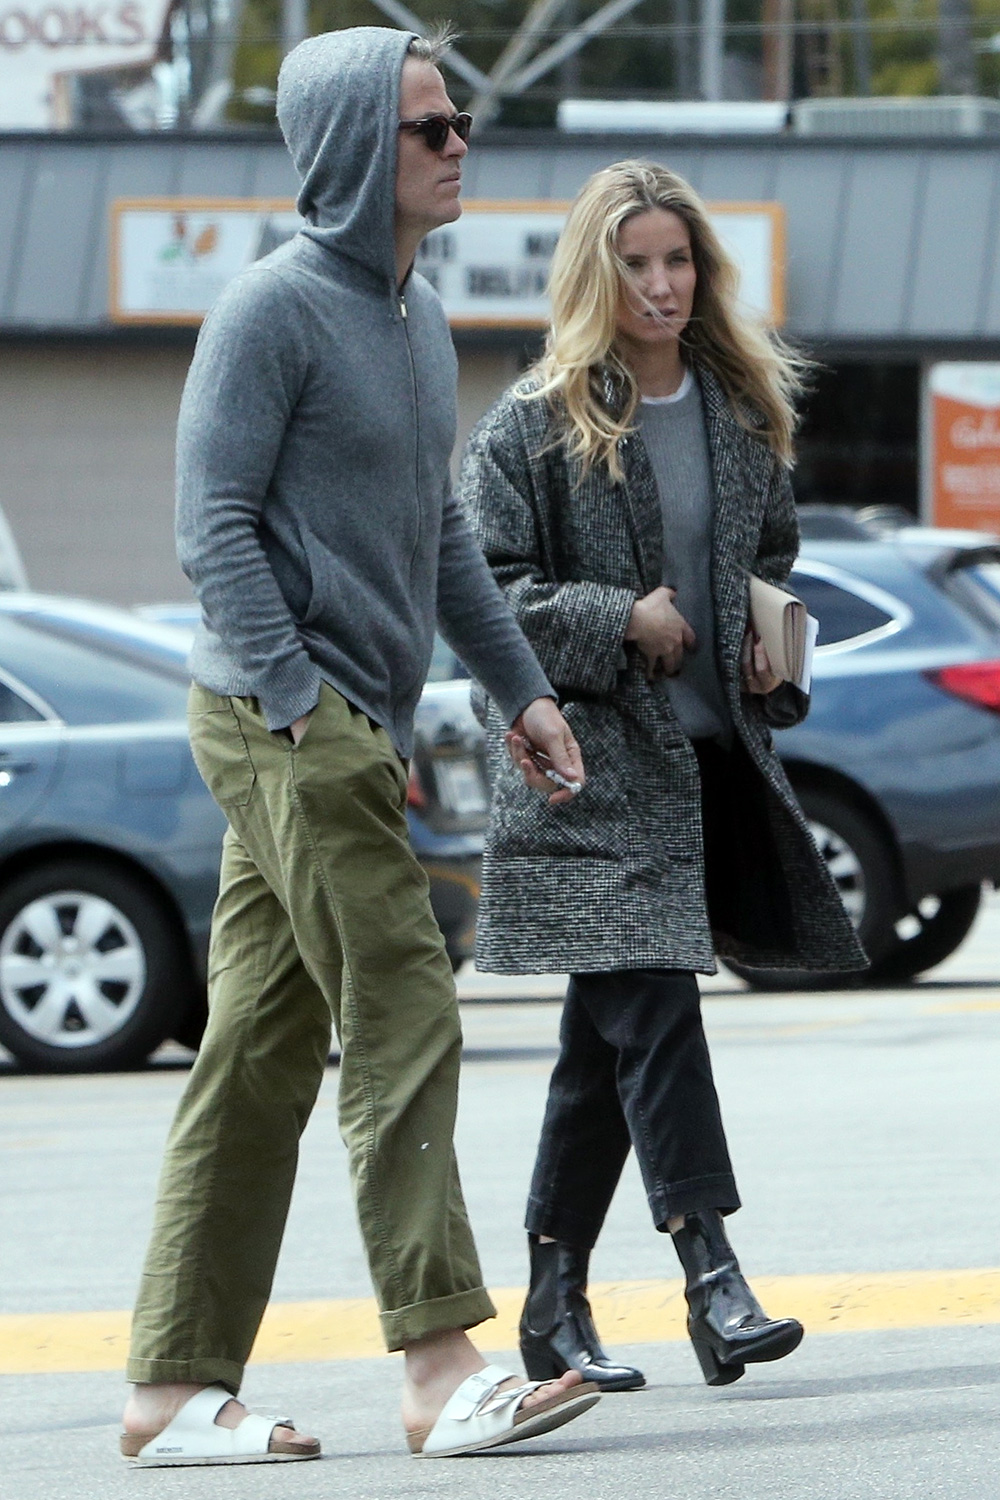 Chris Pine and girlfriend Annabelle Wallis stock up during quarantine